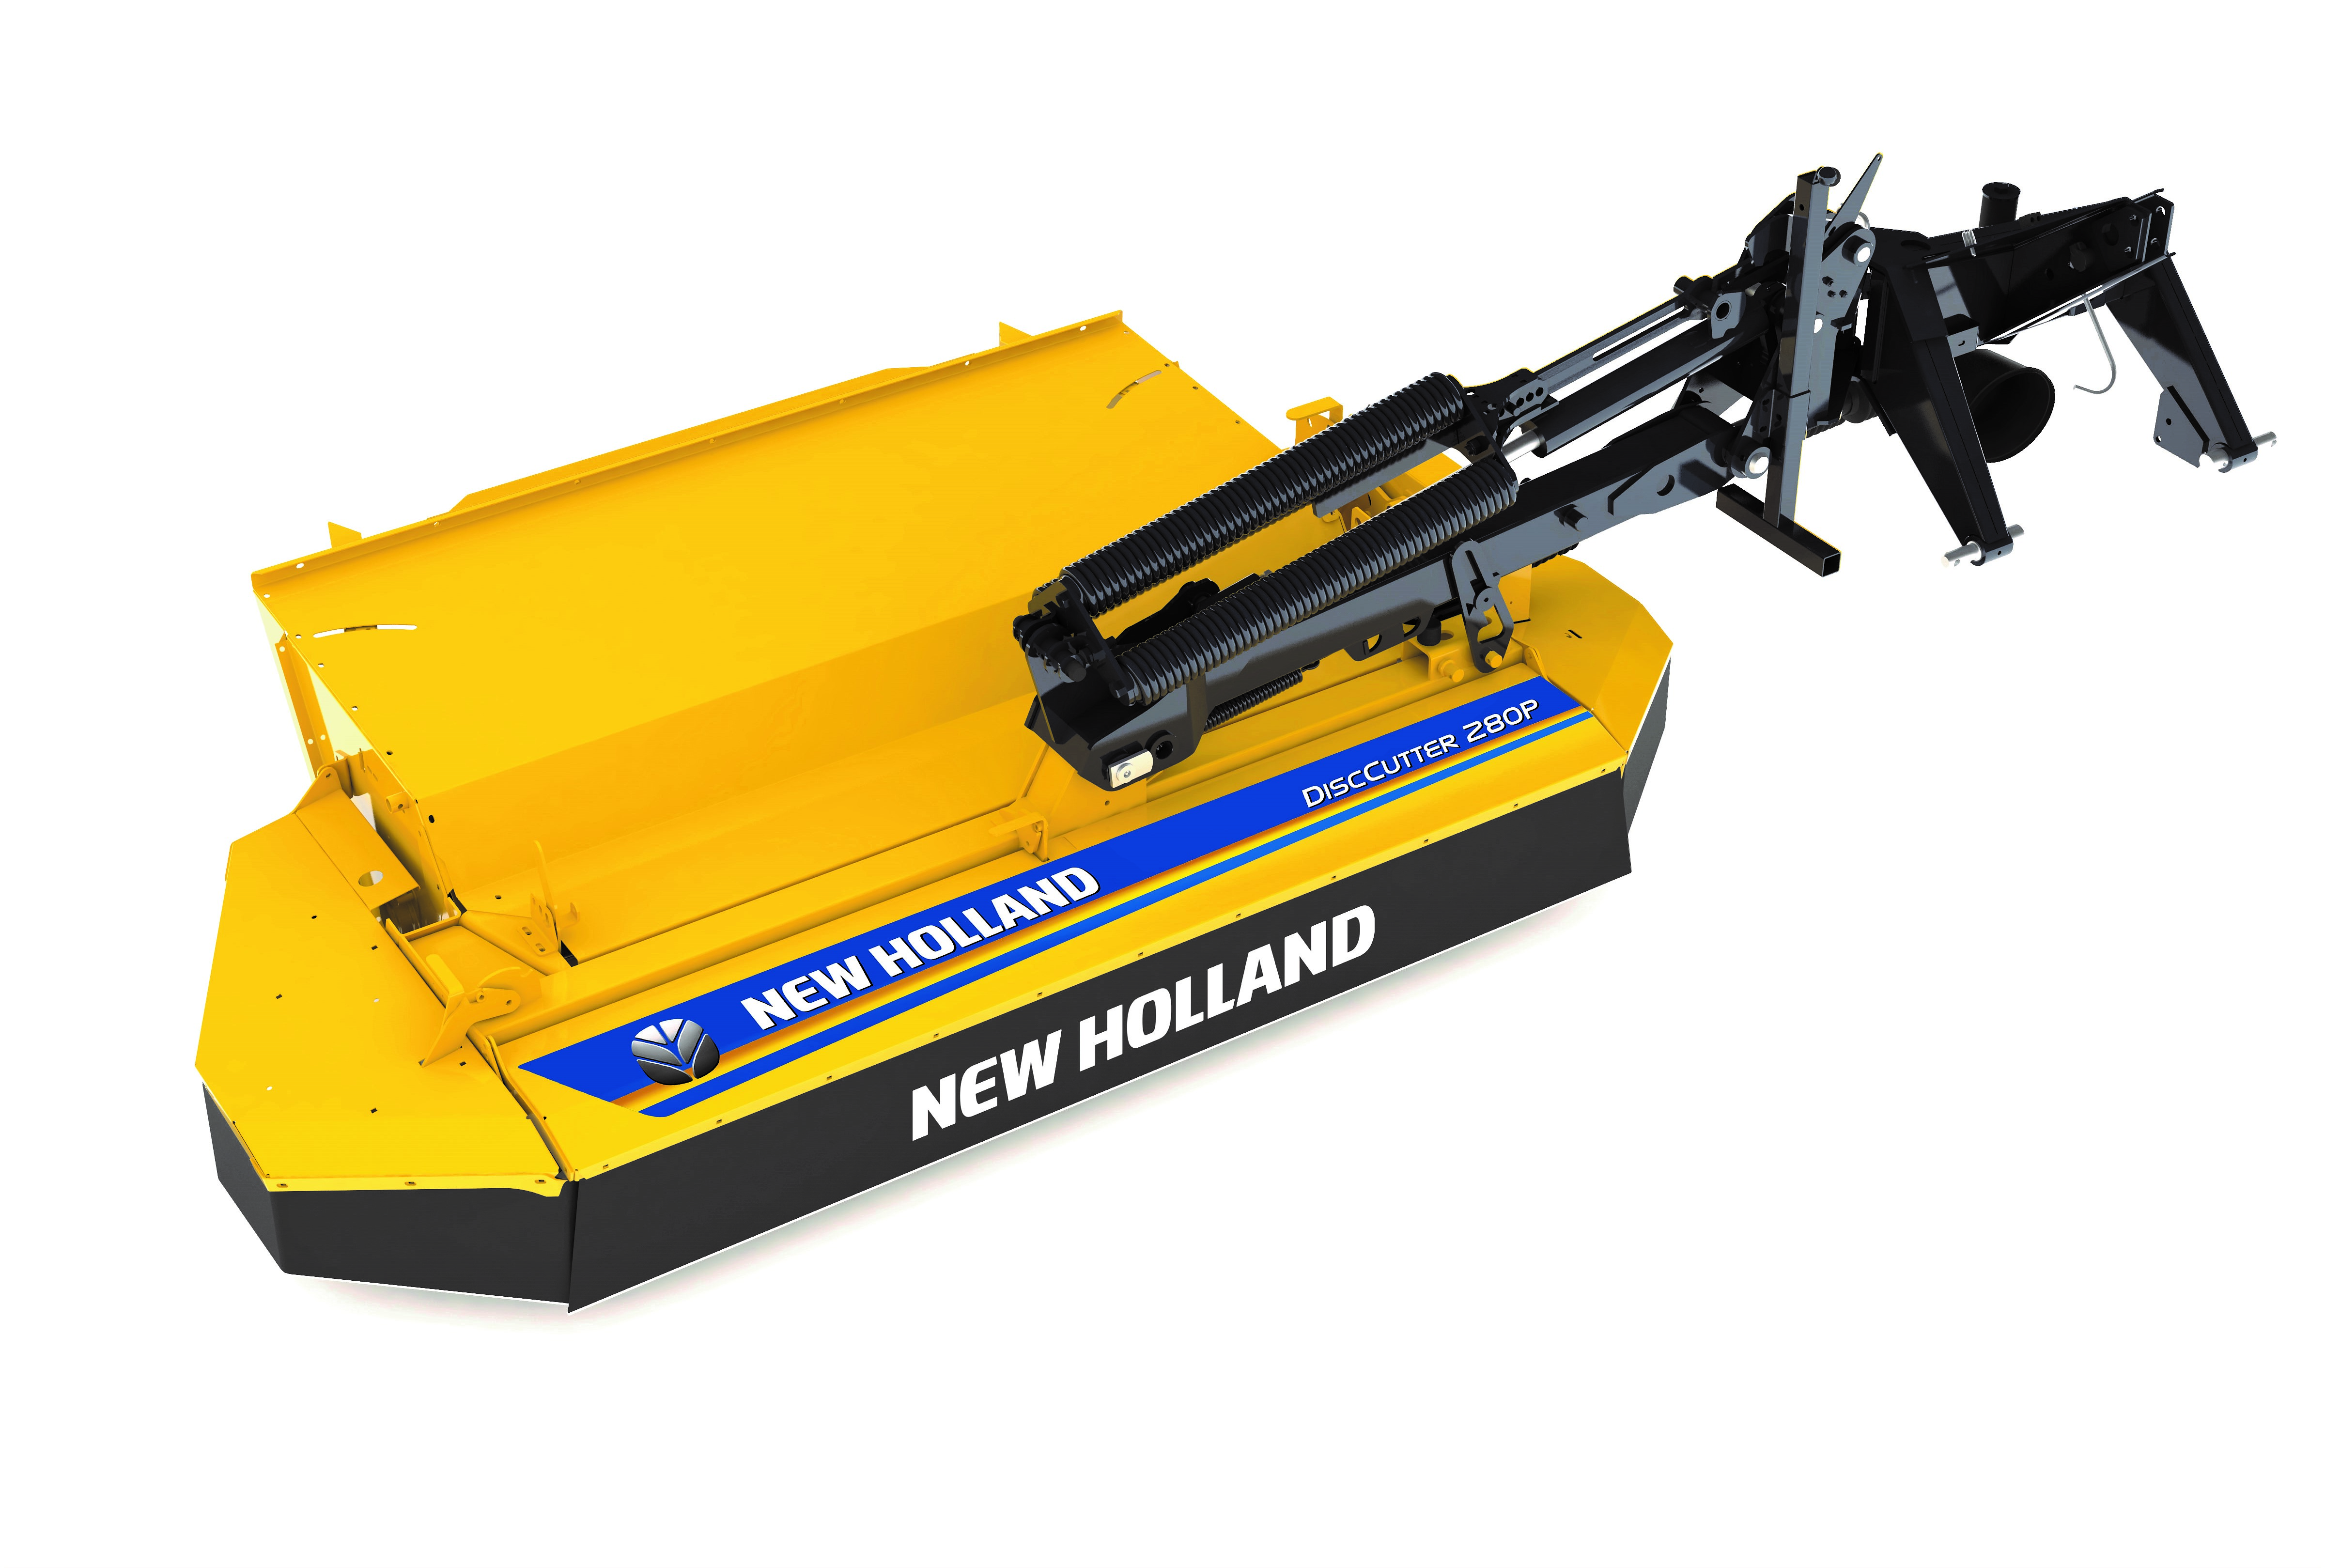 Pics: New Holland unveils mowers and ploughs - courtesy of